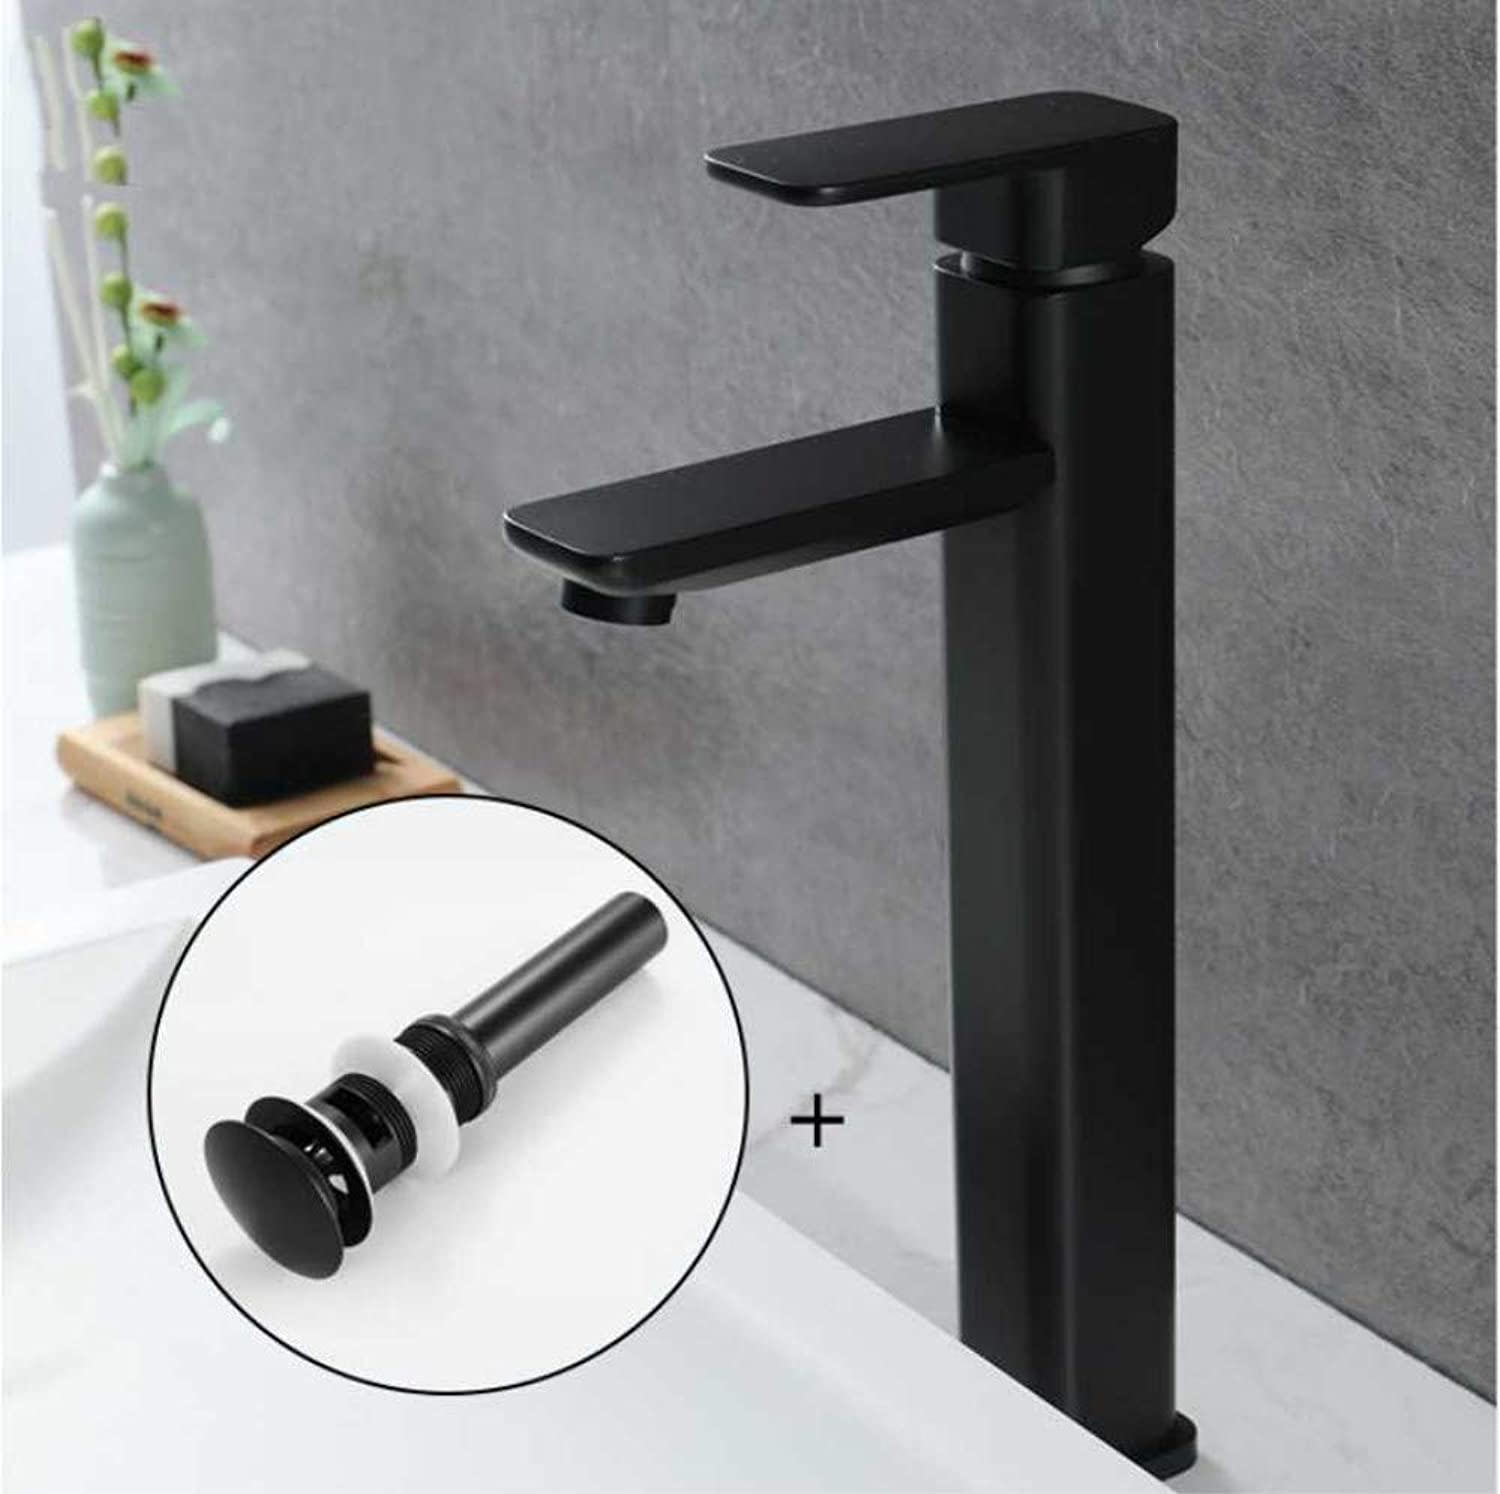 Jukunlun Basin Faucet Basin Bathroom Mixers Taps Waterfall Bathroom Mixer Faucets Bath Deck Mounted S Taps